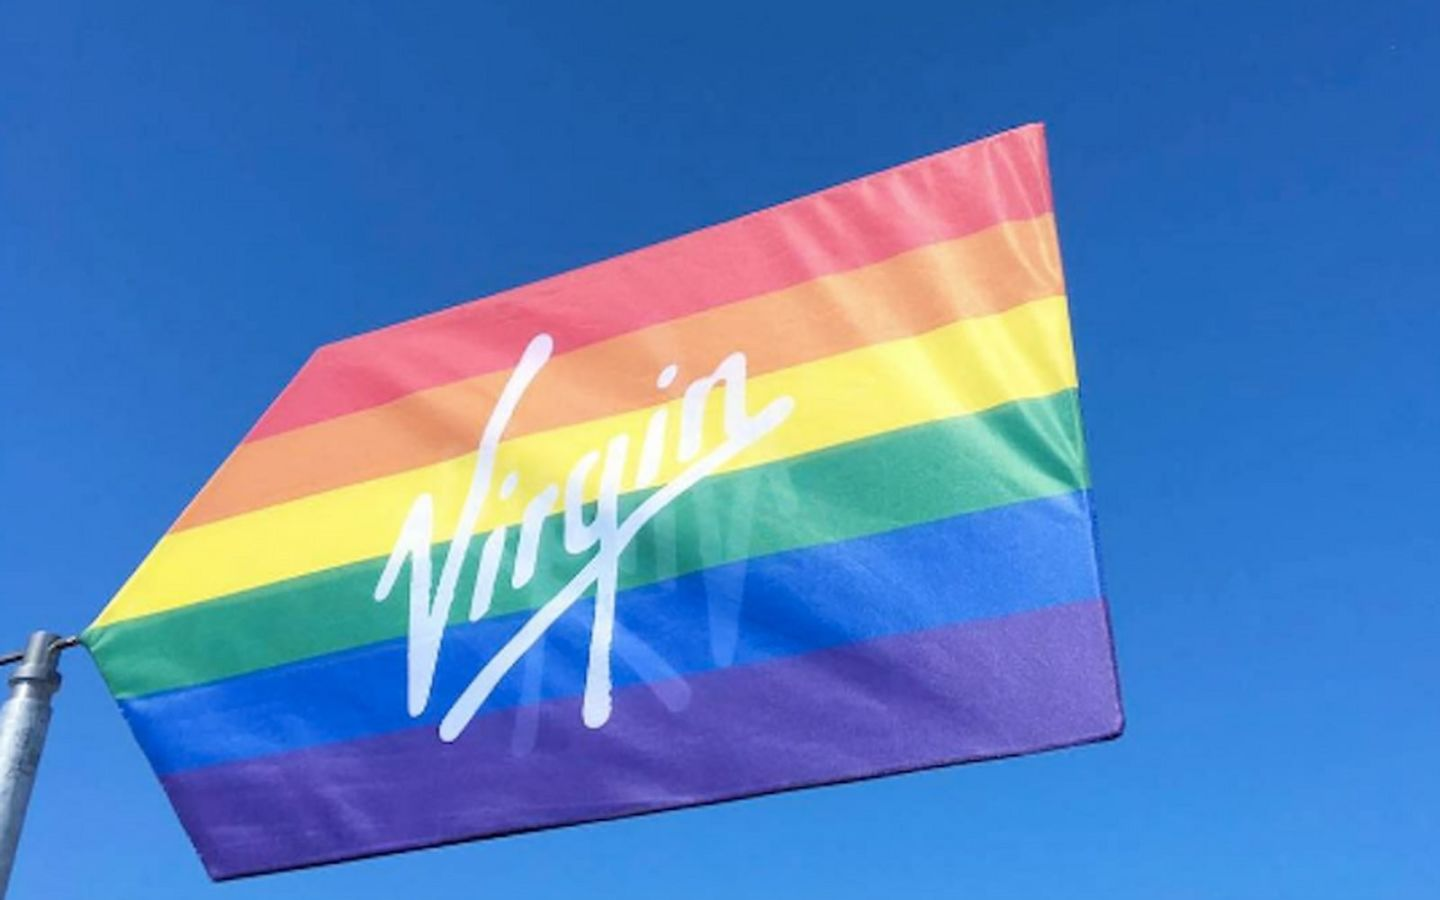 The Pride flag with the Virgin logo across it in white text